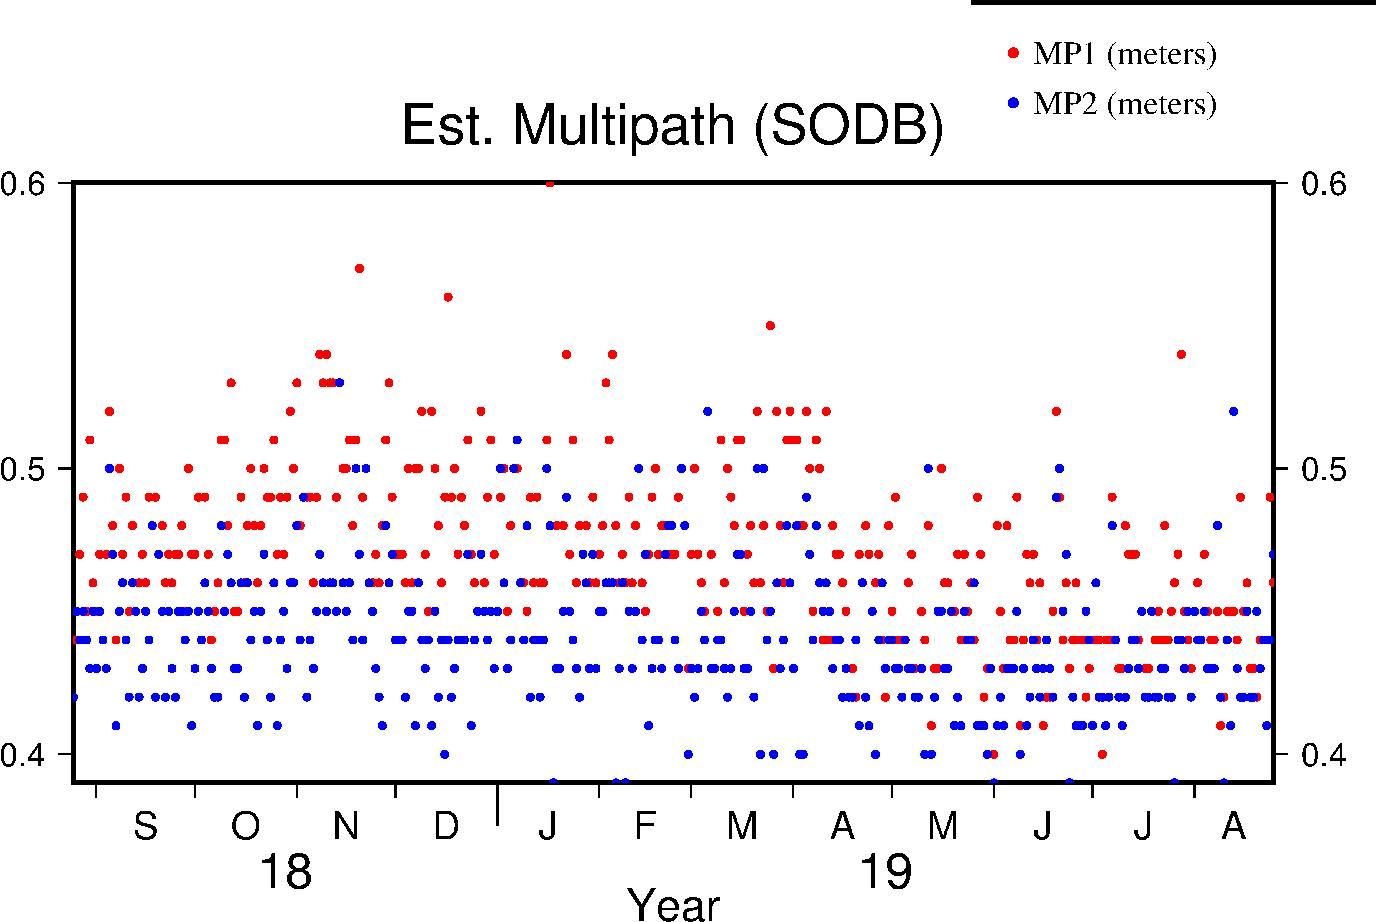 SODB multipath last year